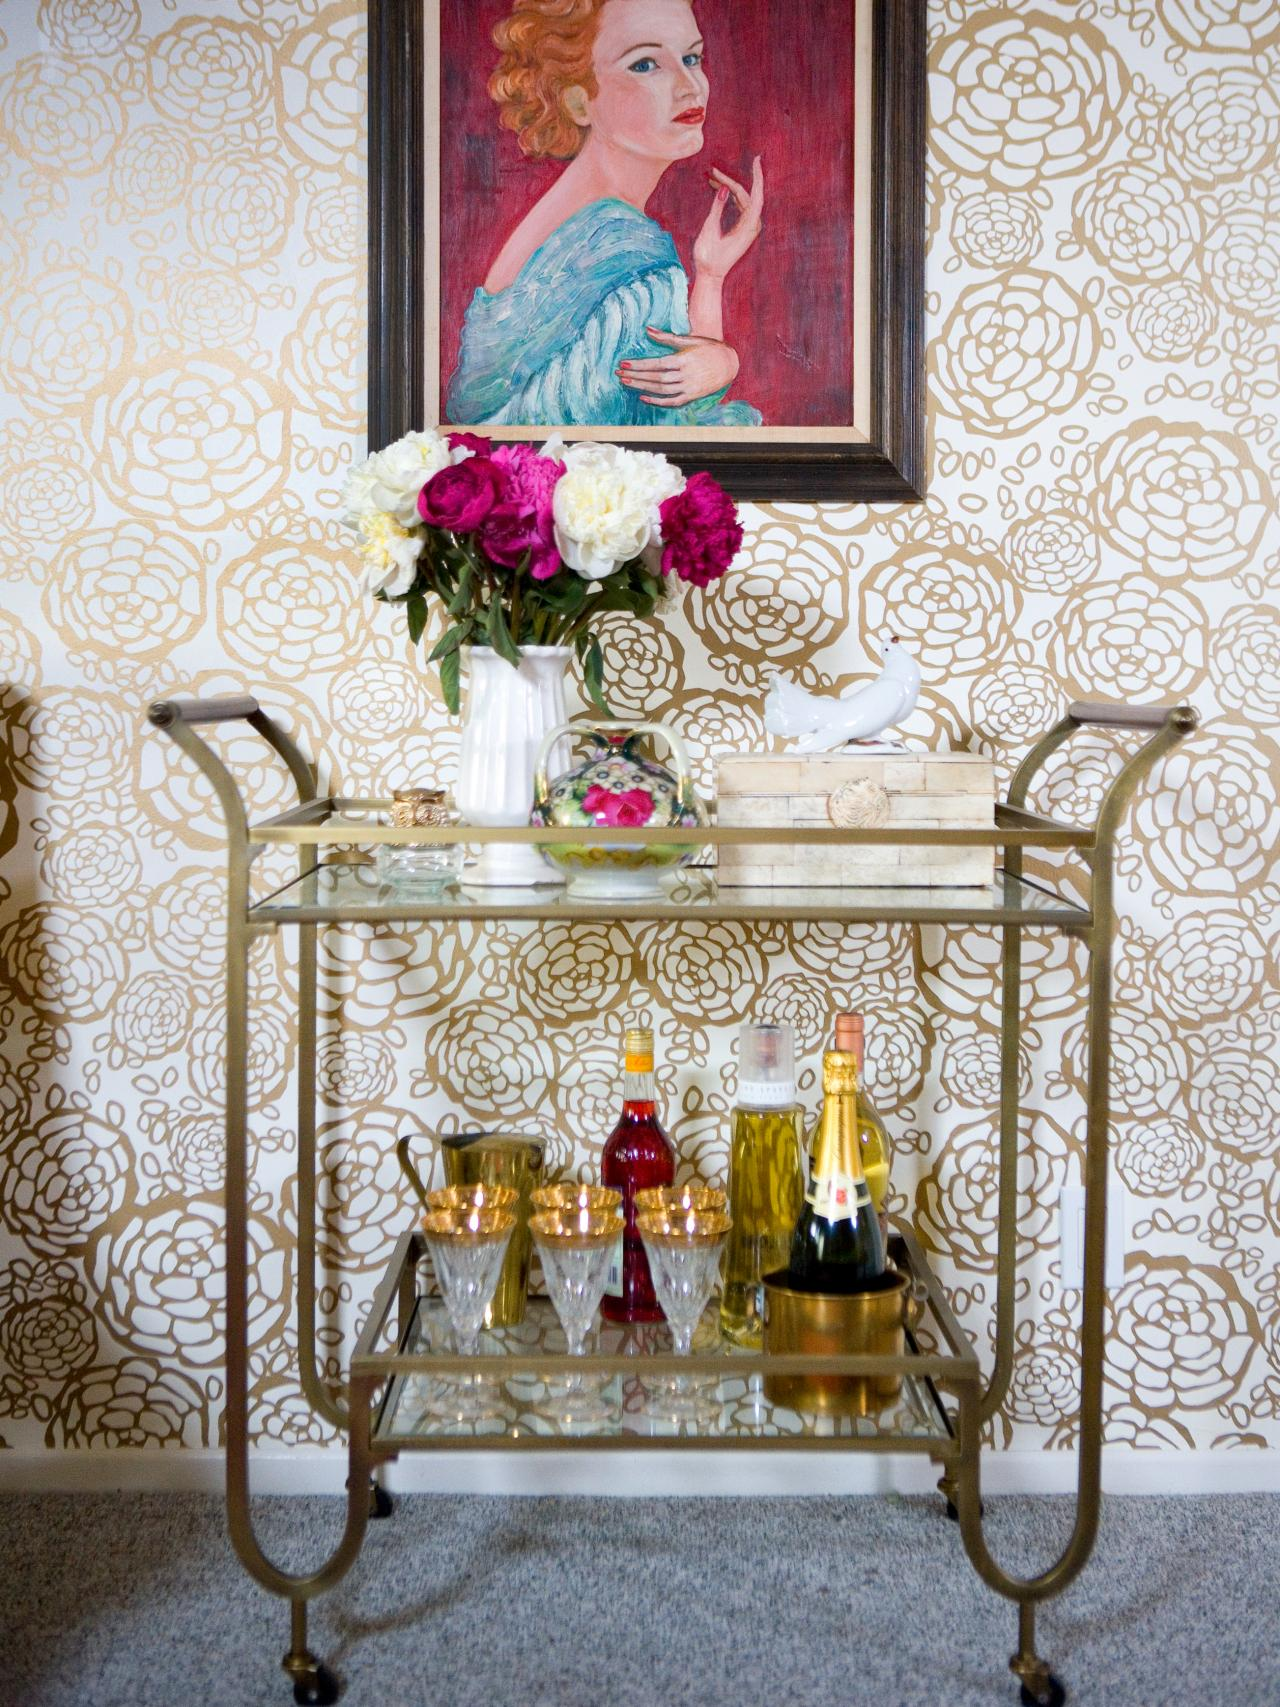 kathy kuo home bar cart - How To Style A Bar Cart